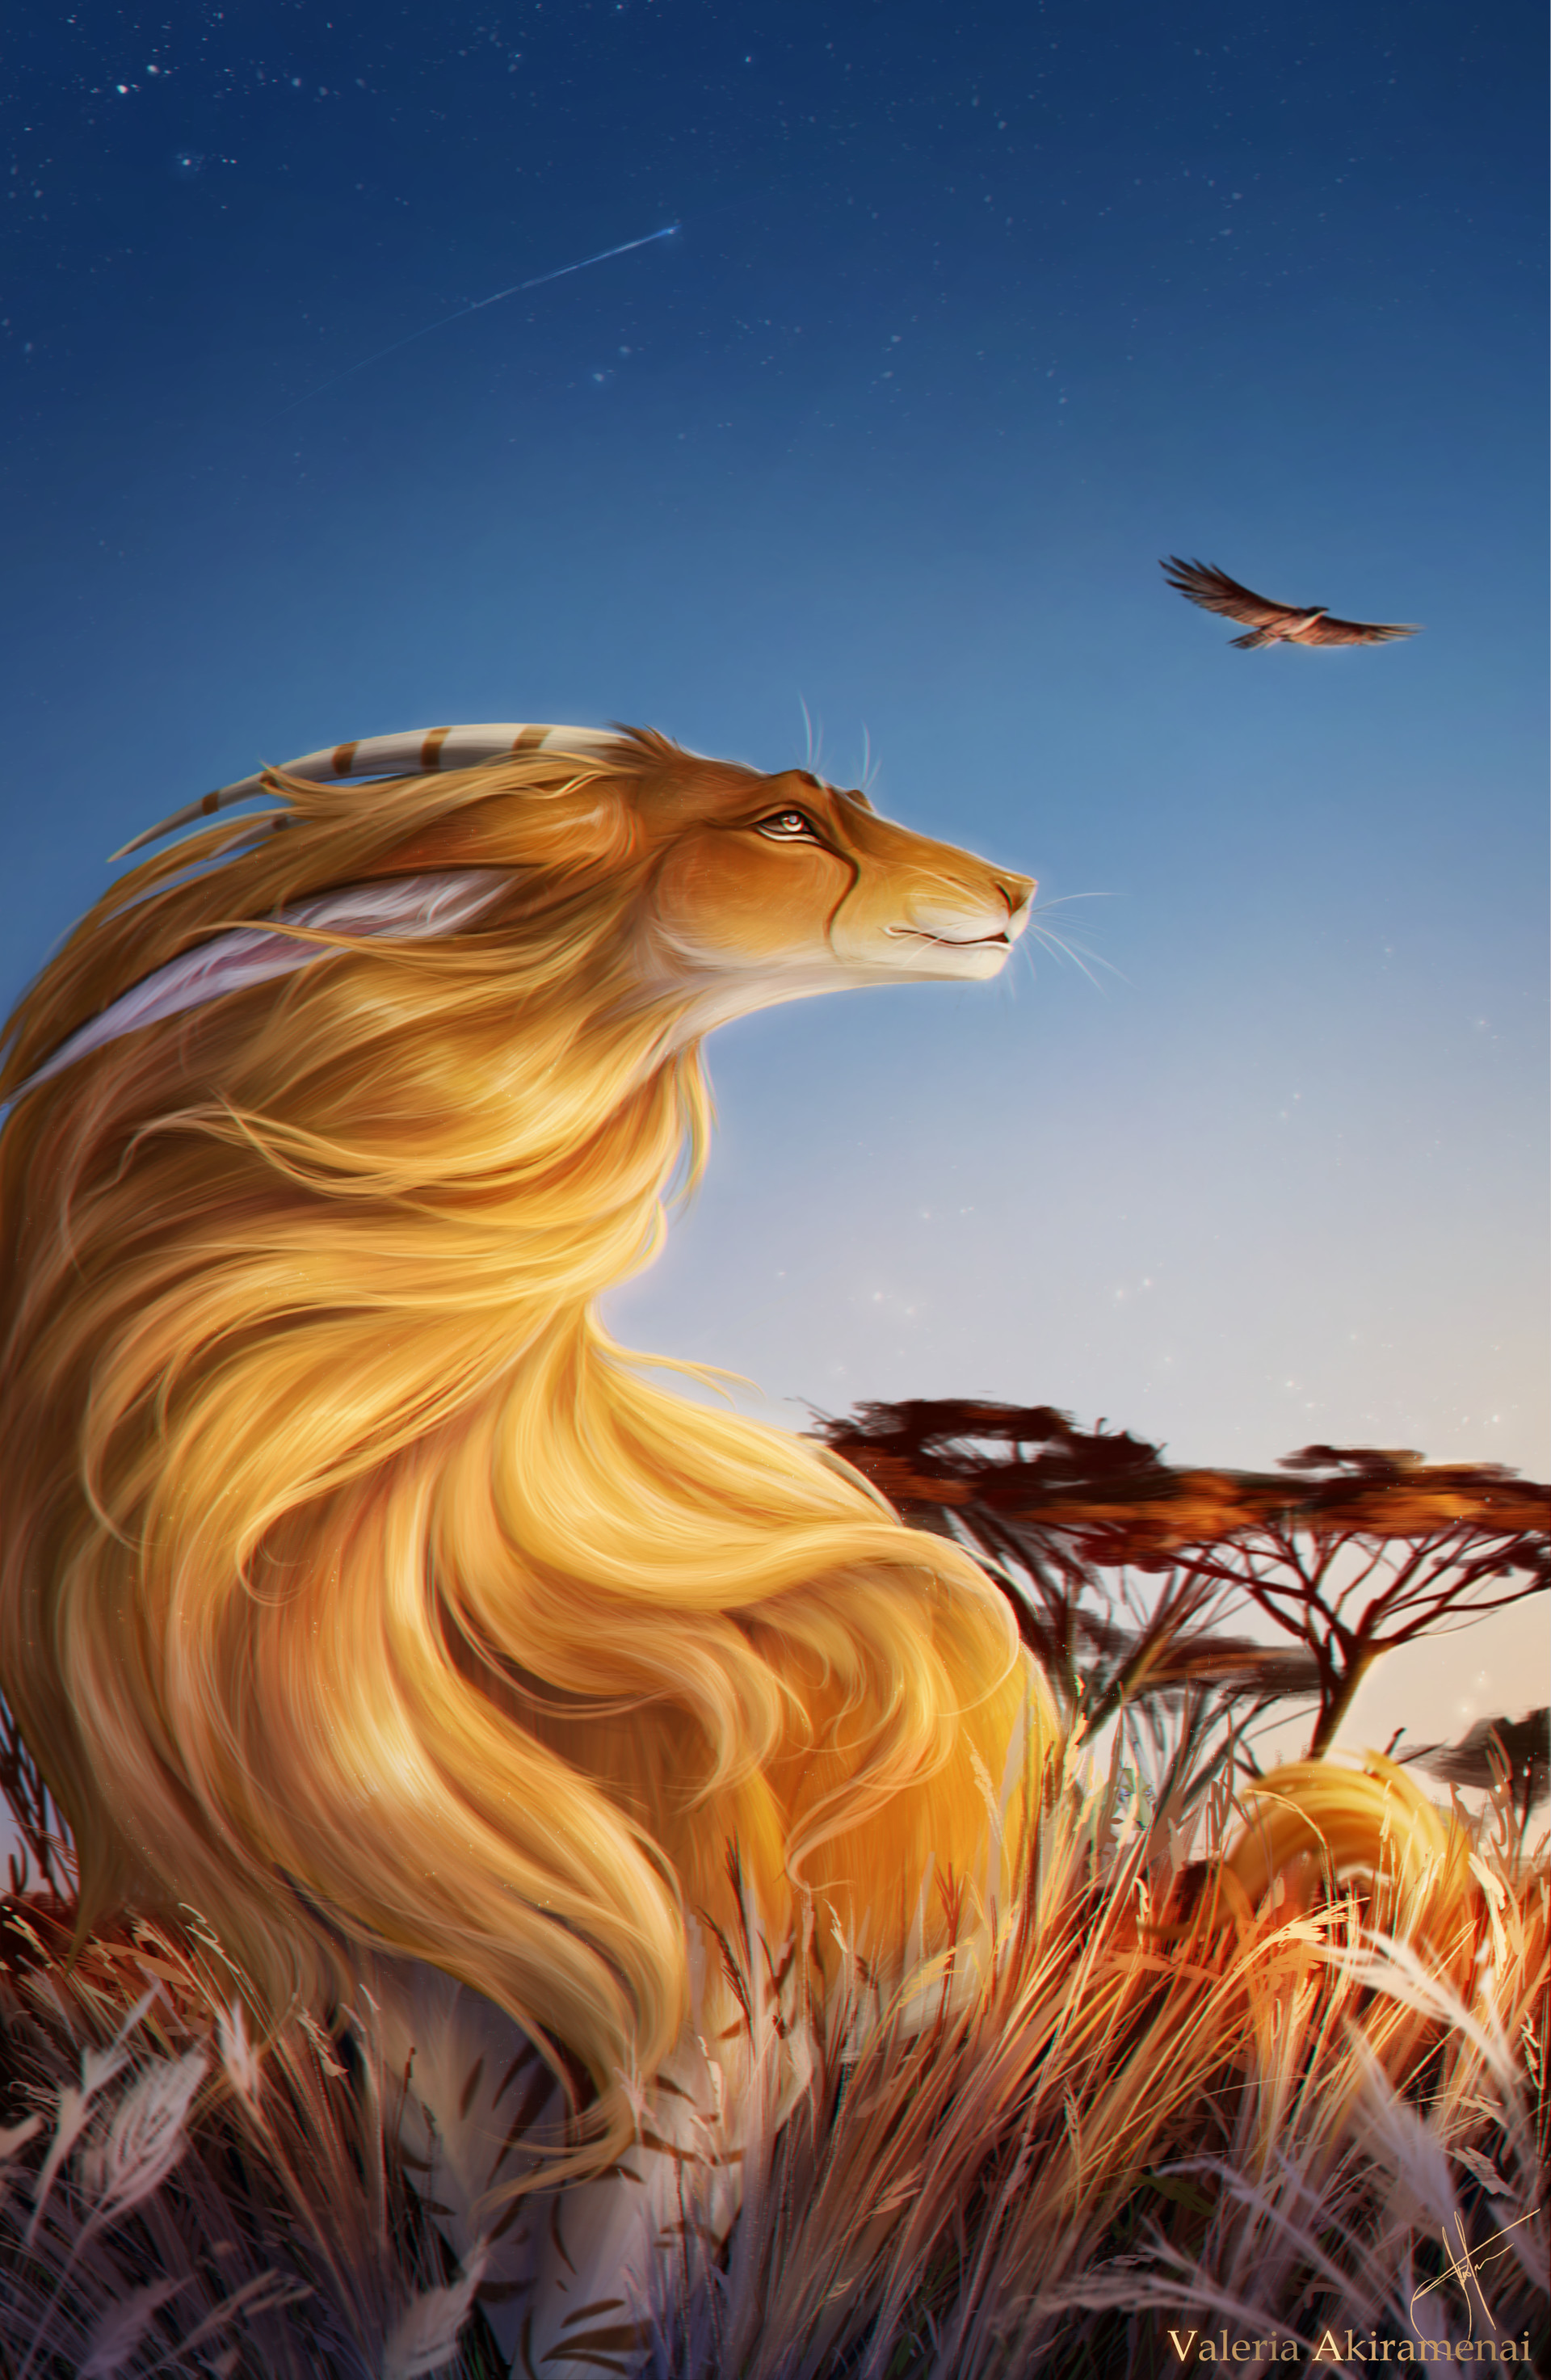 85735 download wallpaper Lioness, Nice, Sweetheart, Bird, Grass, Art screensavers and pictures for free